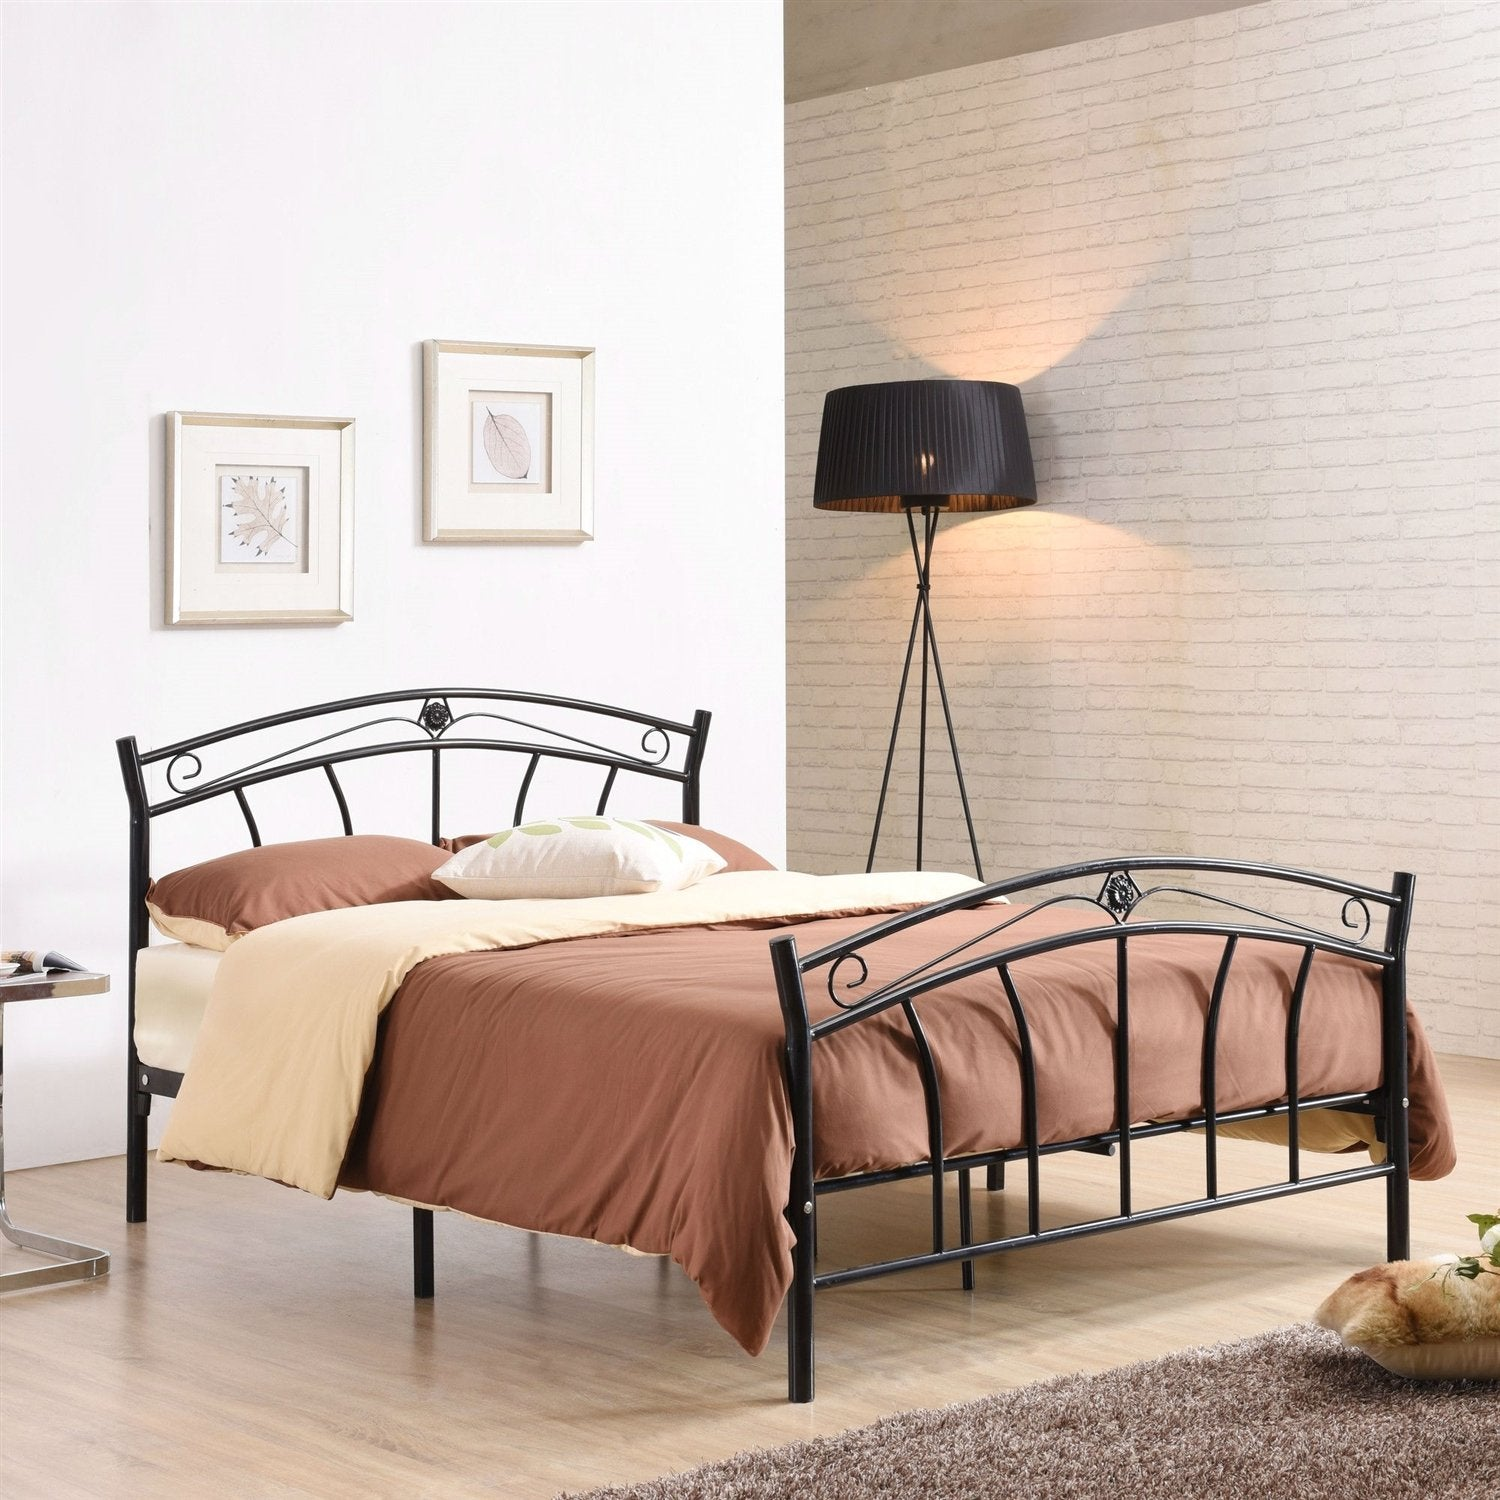 Queen size Black Metal Platform Bed Frame with Headboard and Footboard